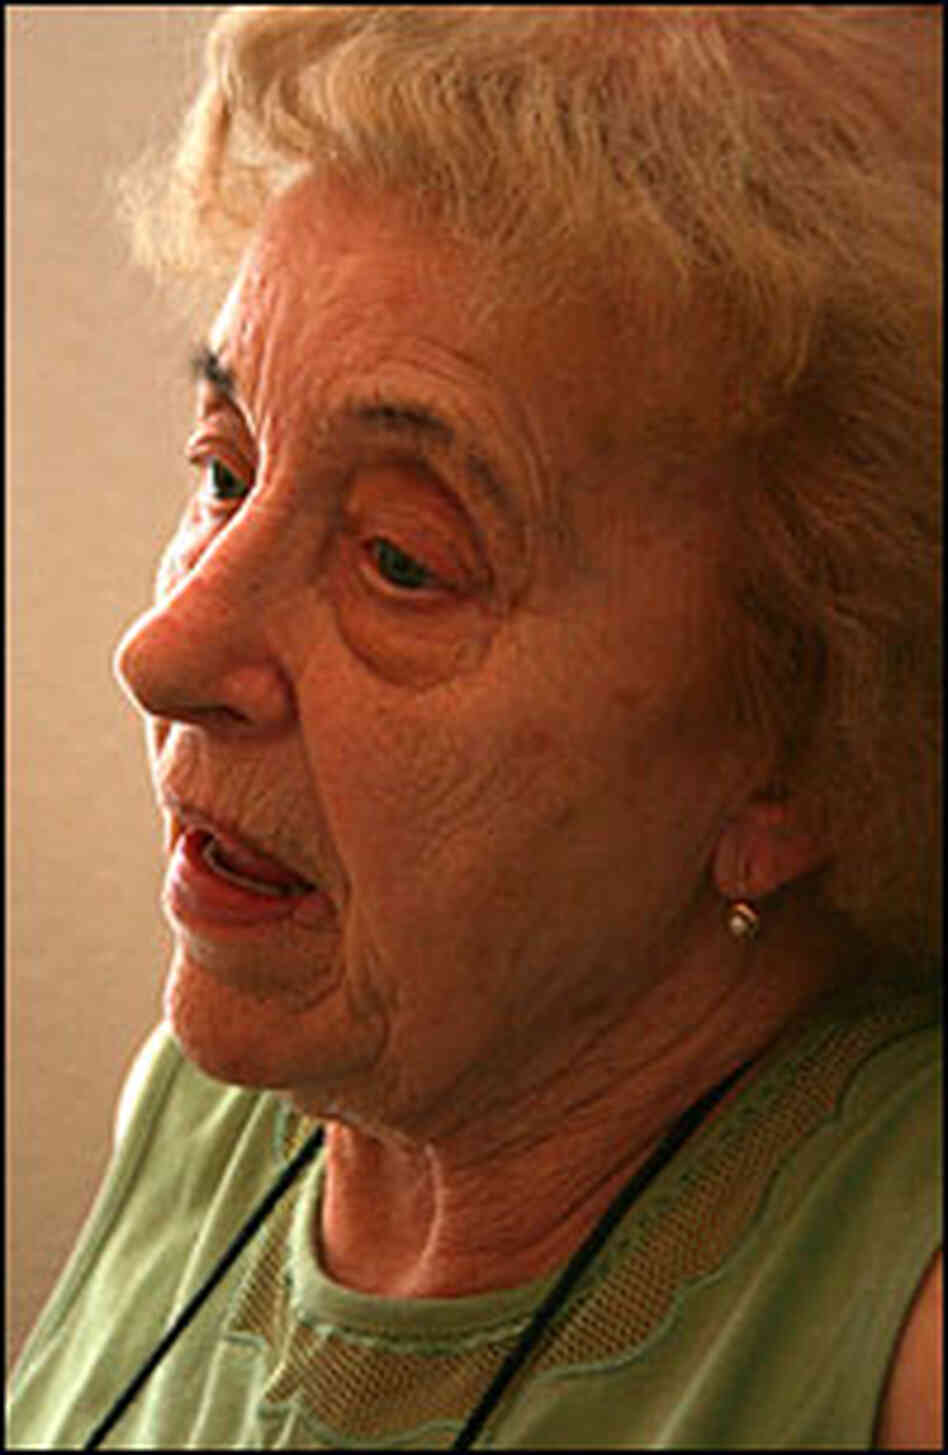 Ruth Schumacher was raped by Soviet Red Army soldiers after Hitler's defeat in 1945.